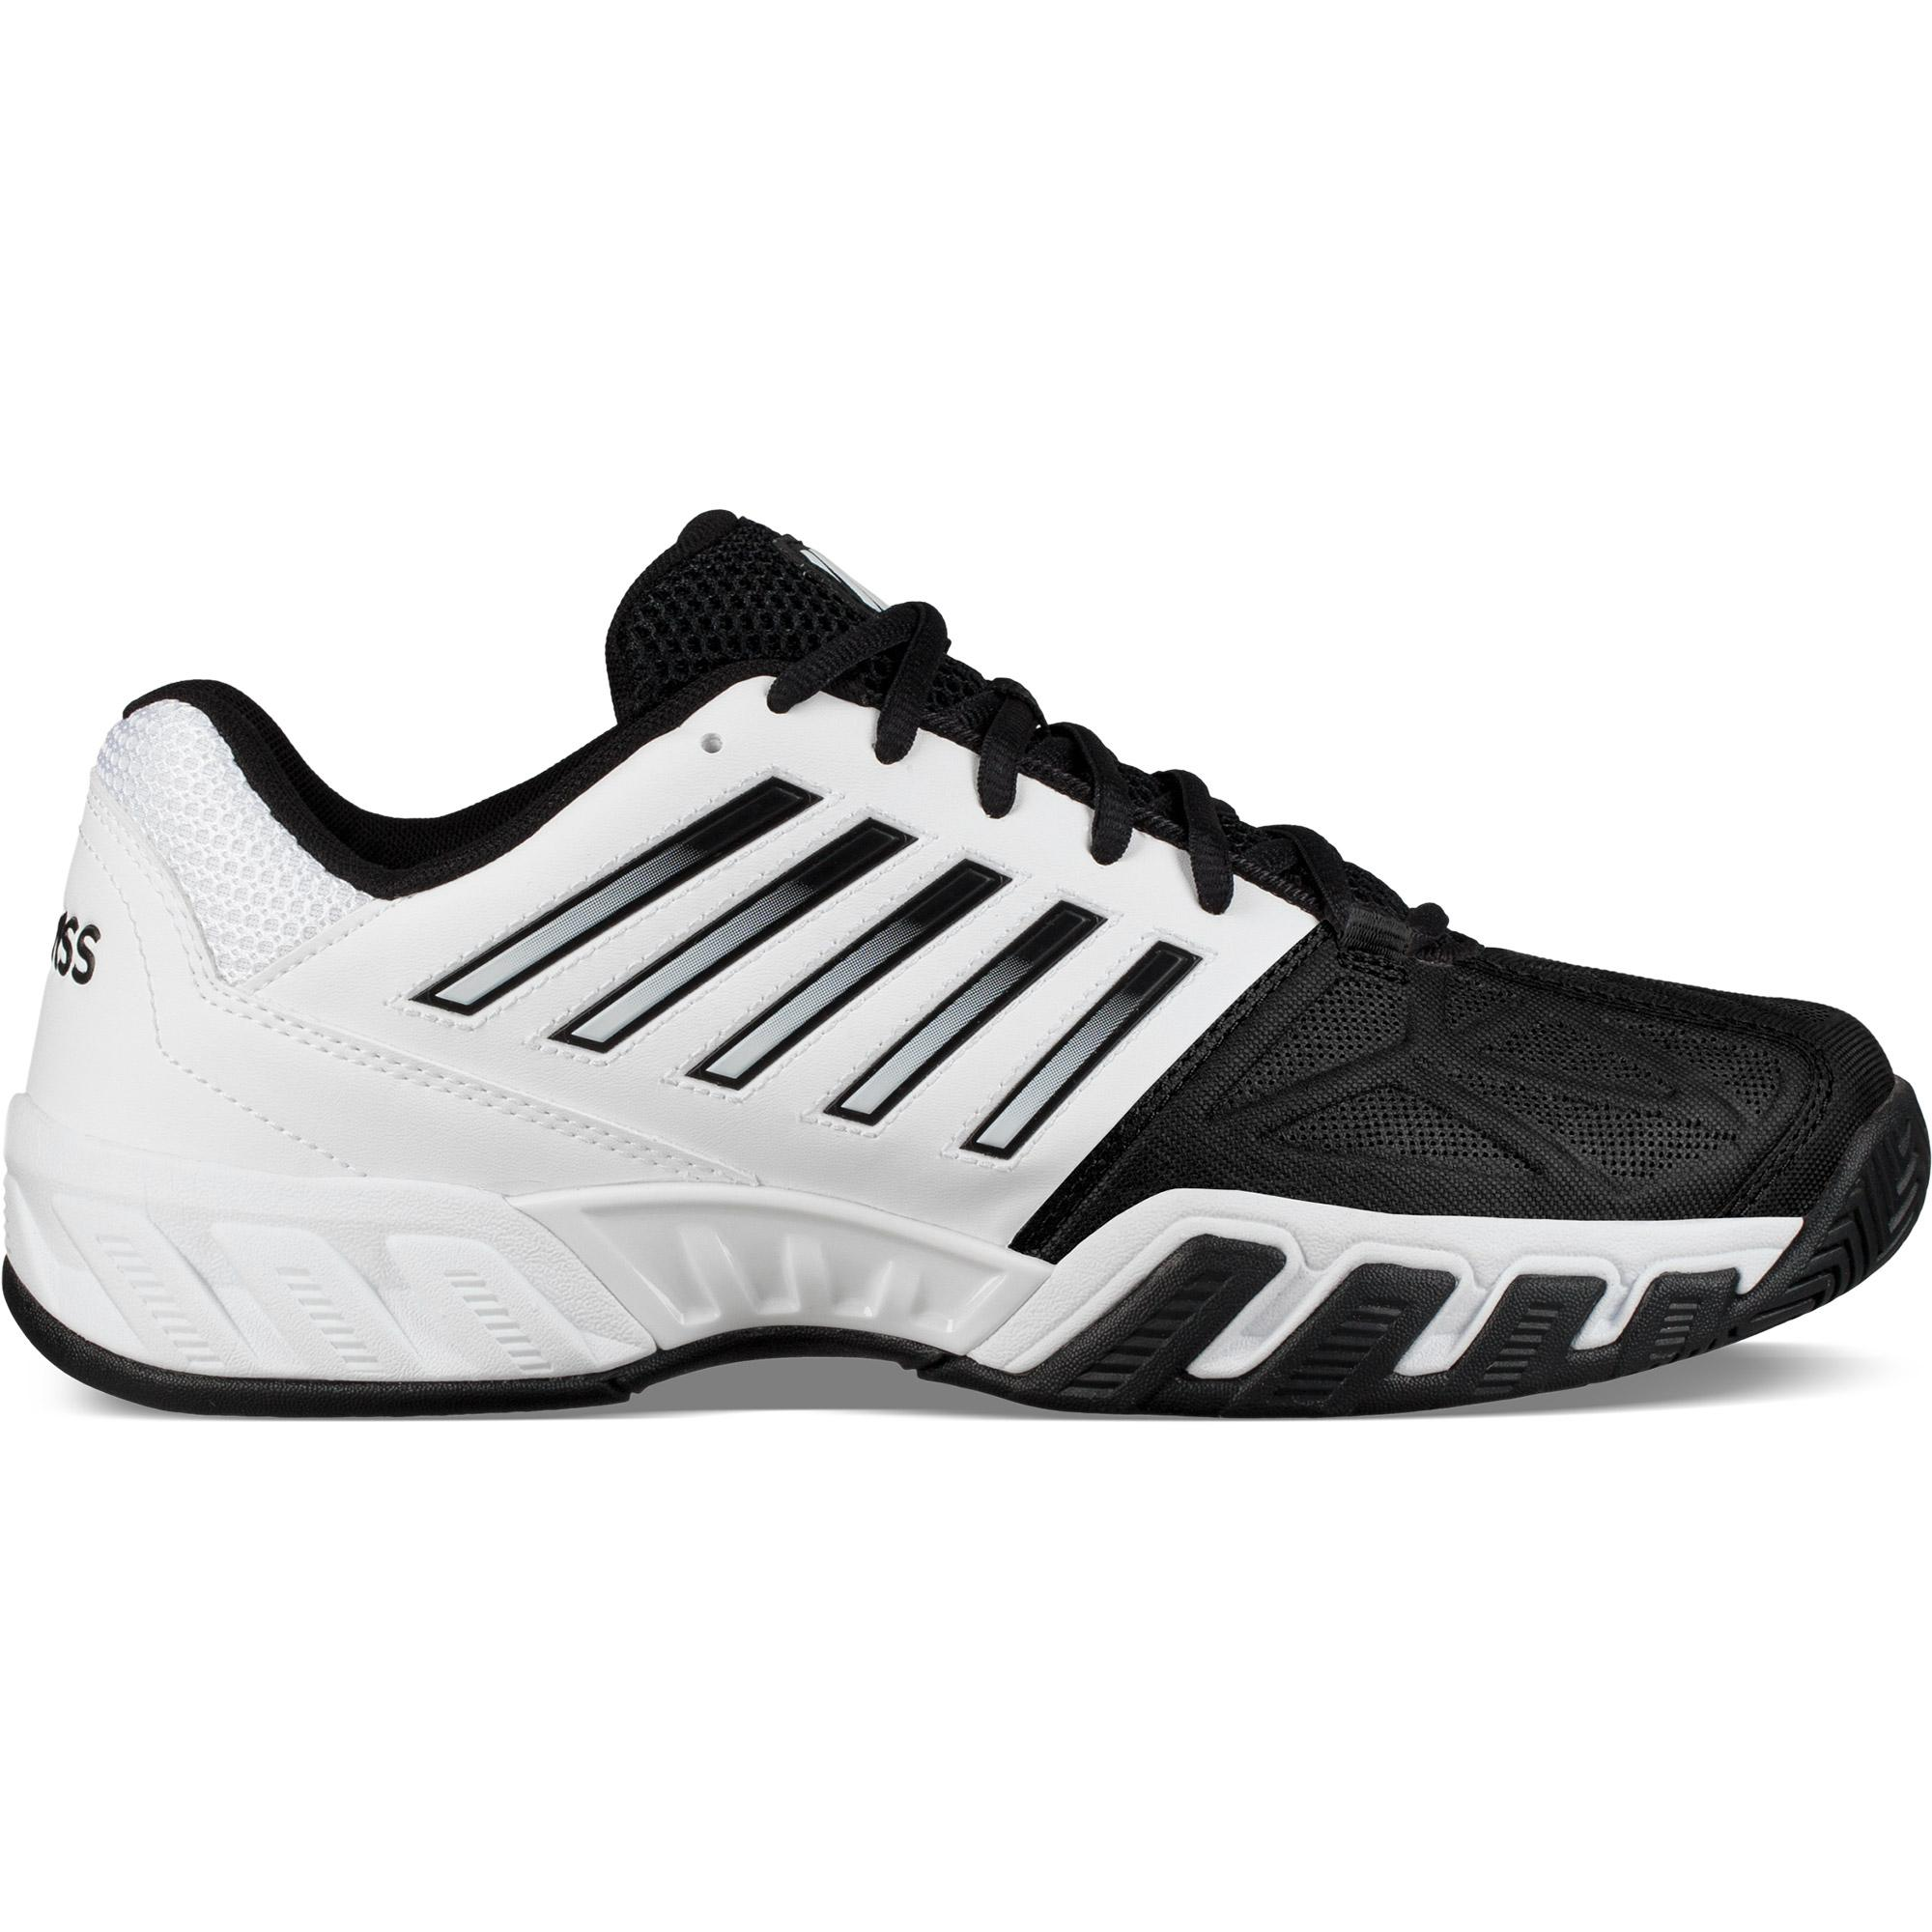 6255bfc7183e K-Swiss Mens BigShot Light 3 Tennis Shoes - White Black - Tennisnuts.com